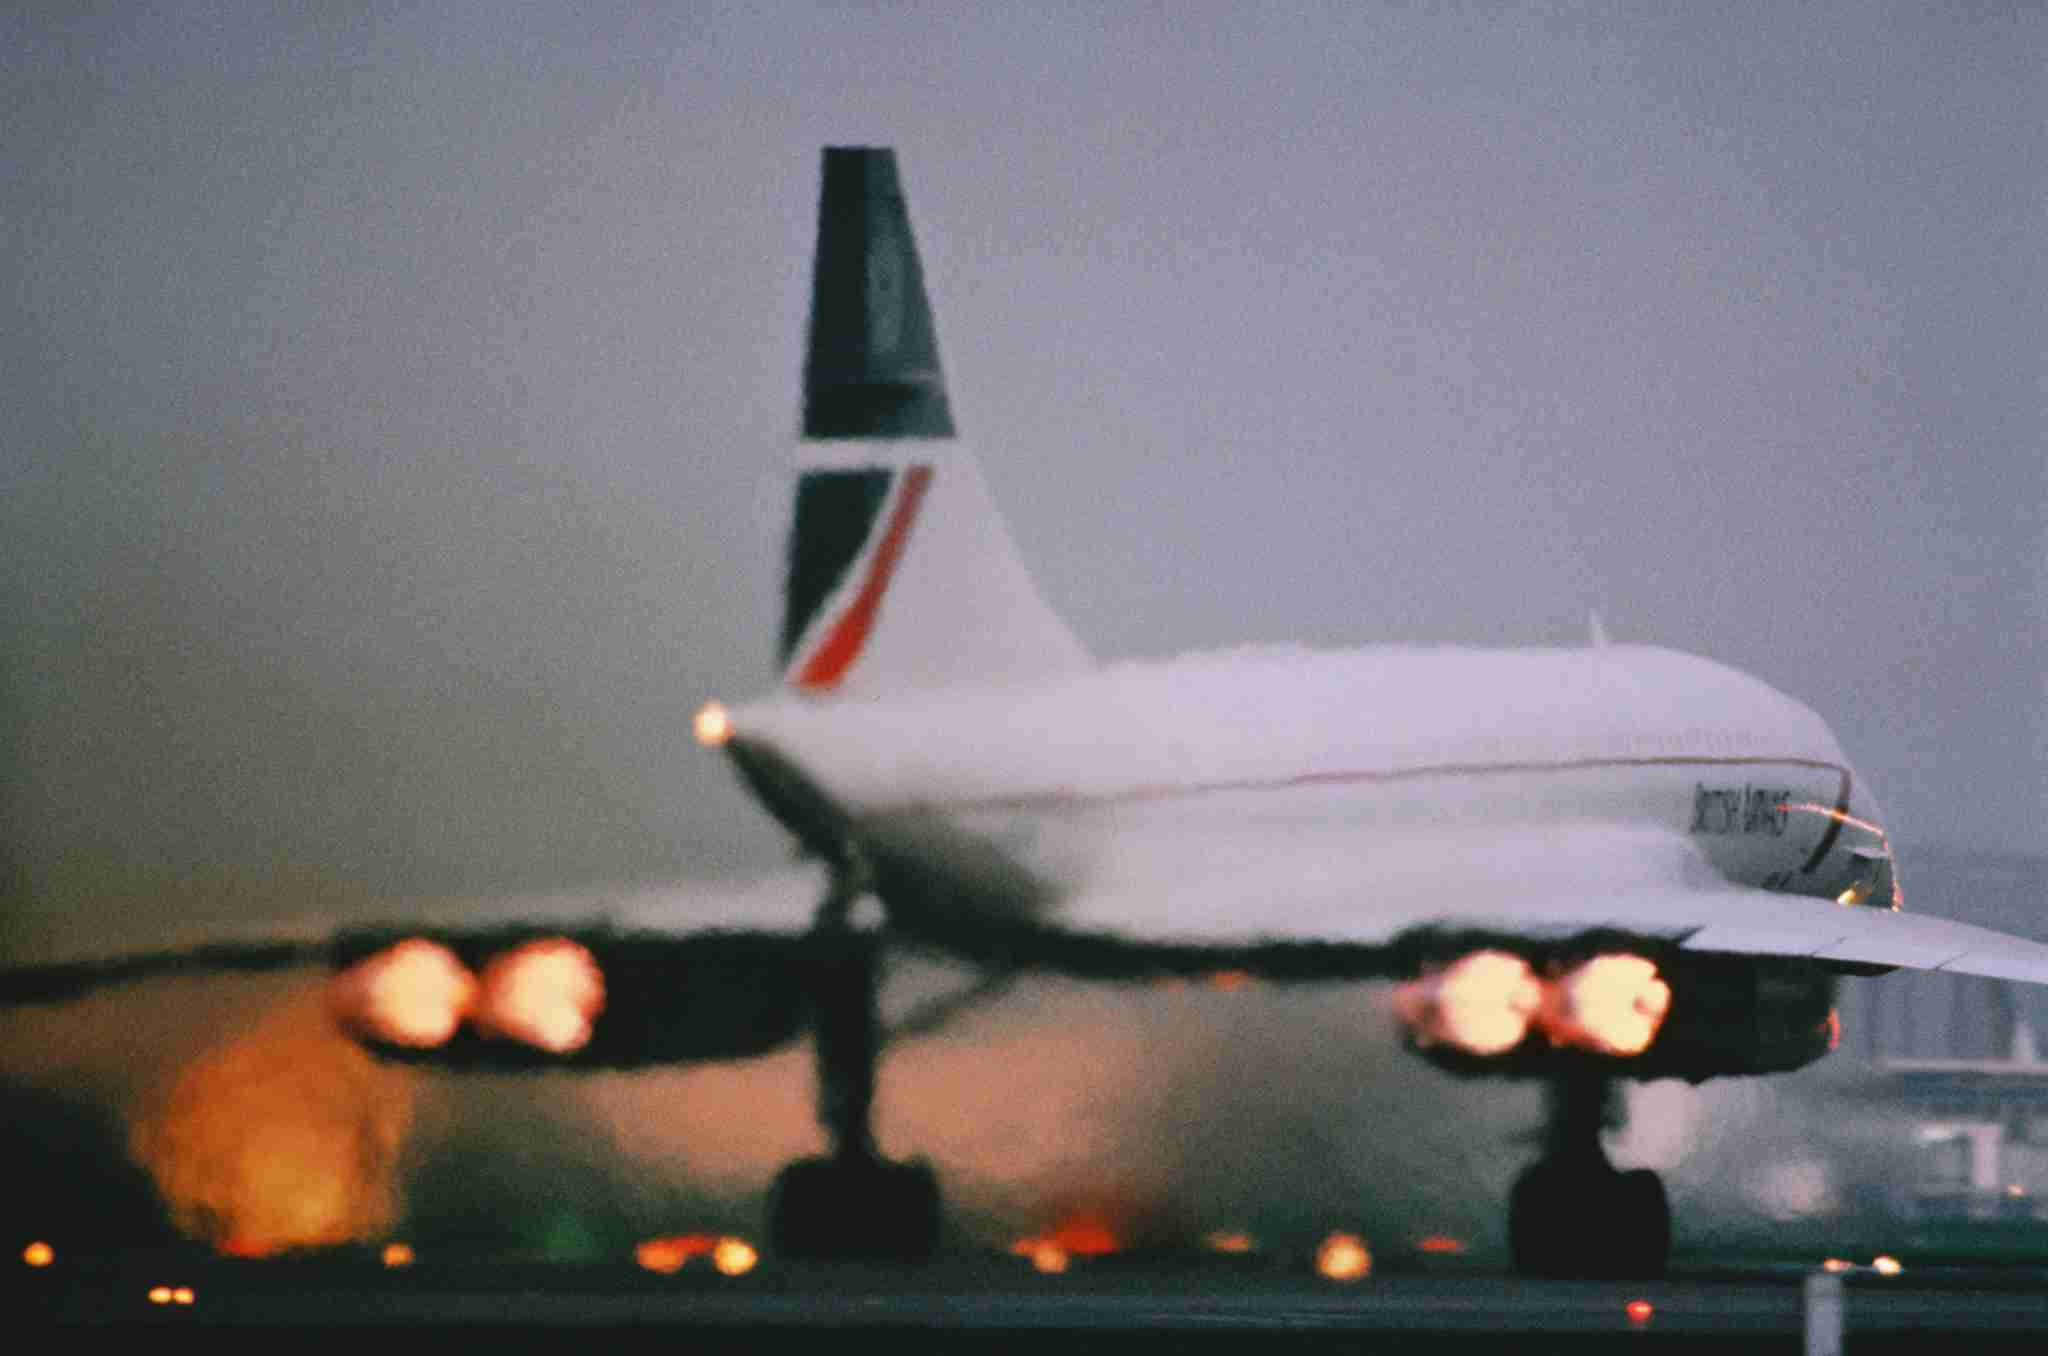 British Airways Aerospatiale BAC Concorde taking-off with afterburners blazing. (Photo by: aviation-images.com/UIG via Getty Images)